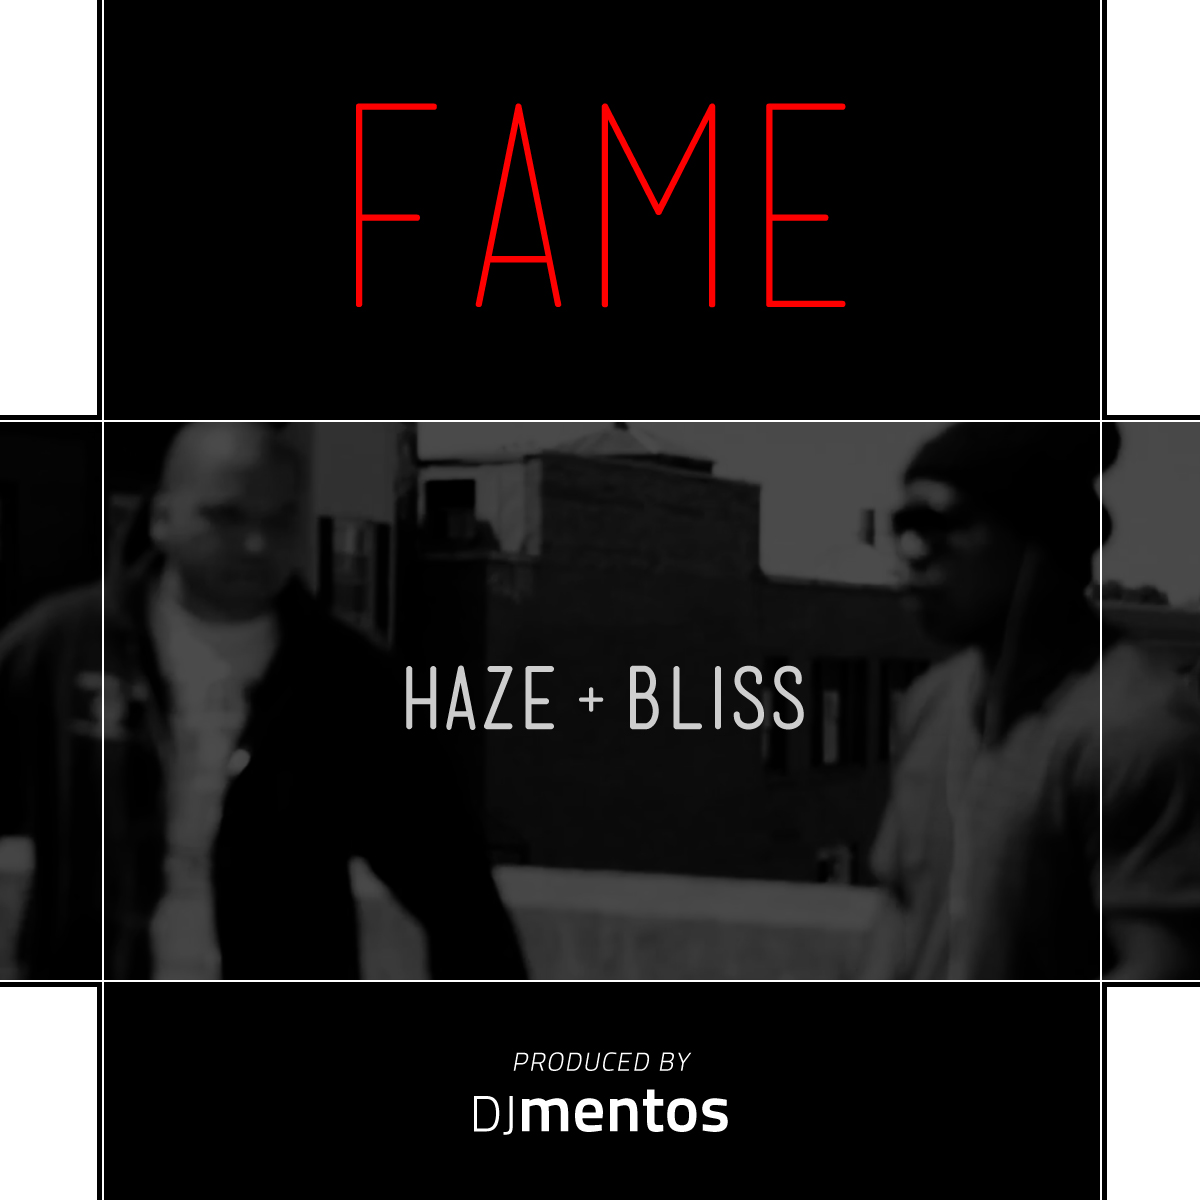 FAME-bliss-haze-03